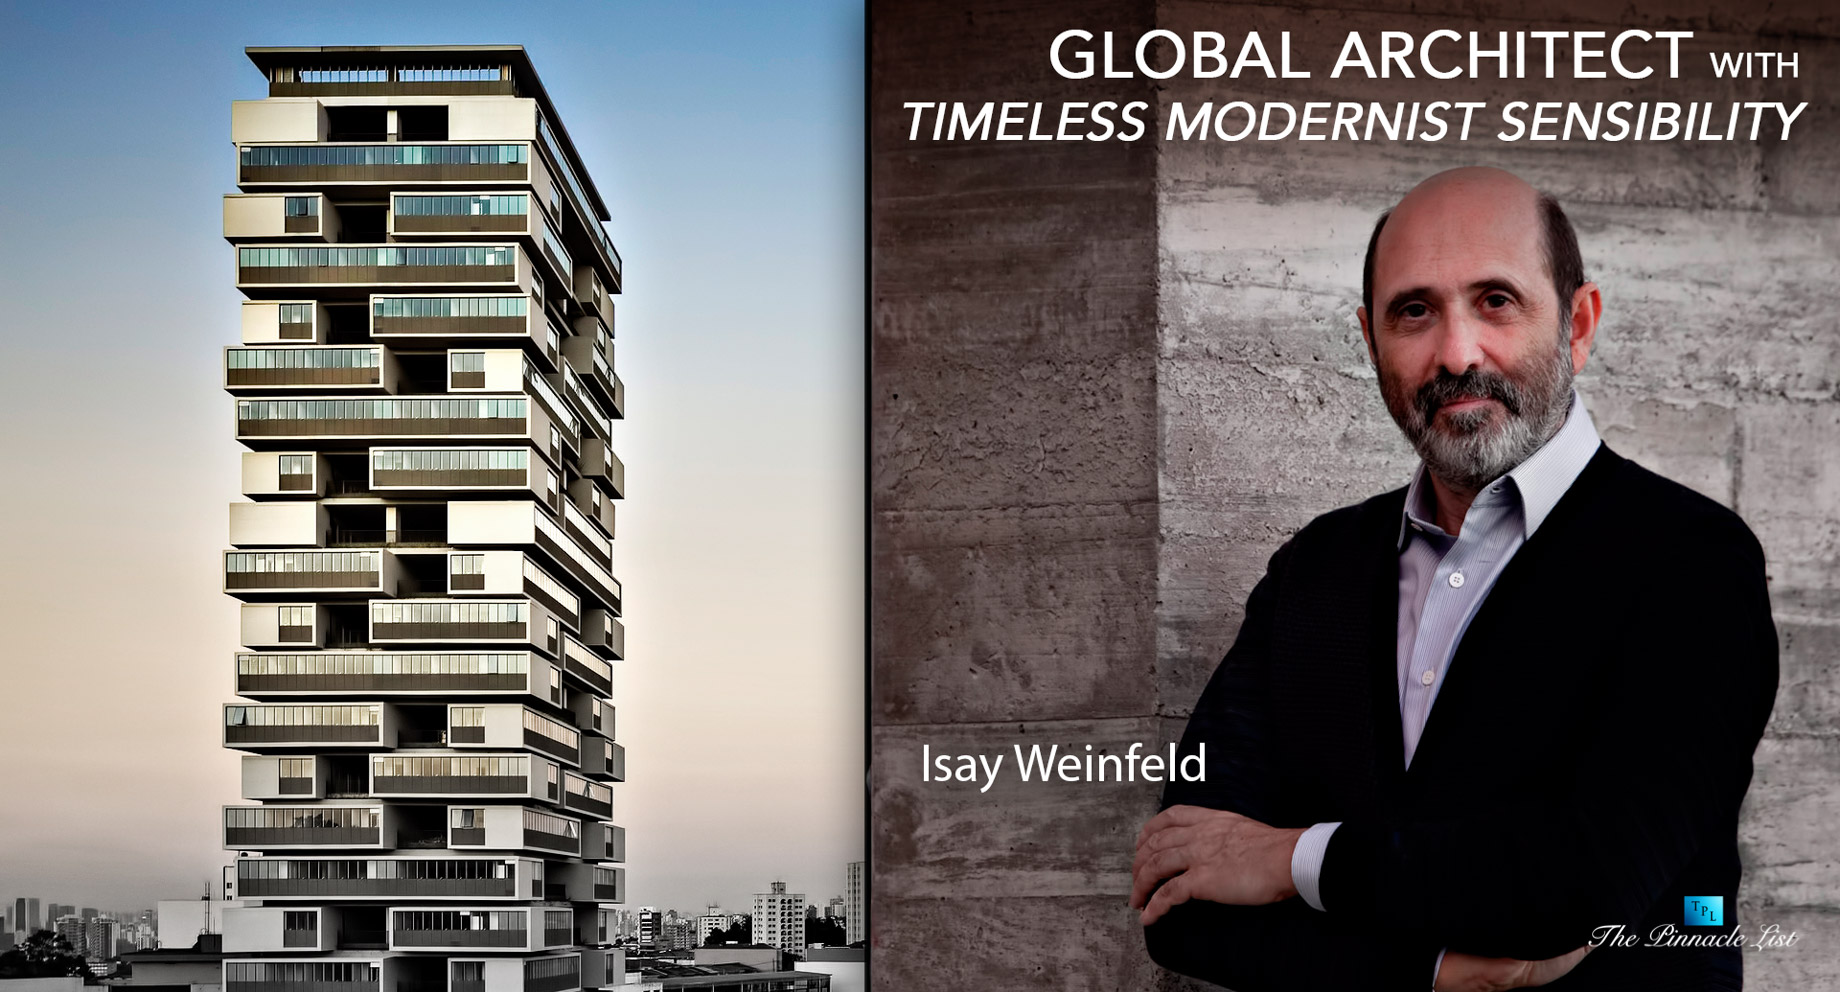 Isay Weinfeld - A Global Architect with Timeless Modernist Sensibility